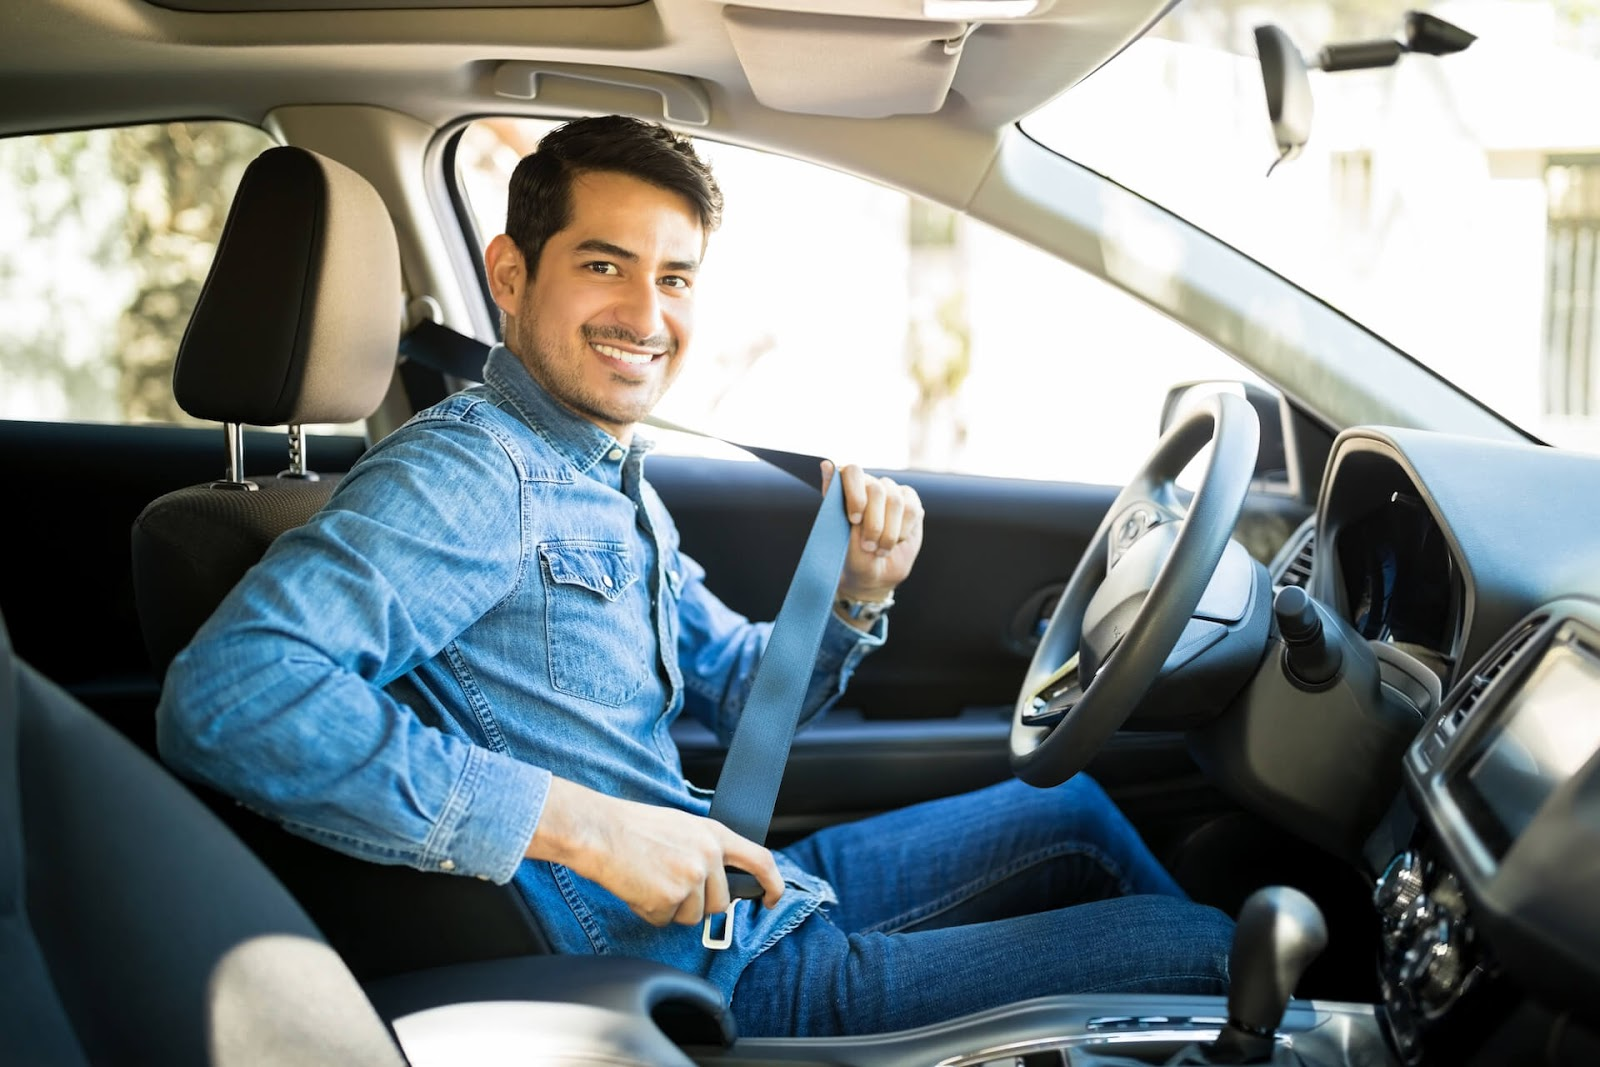 Man smiling at the camera while he puts on his seatbelt